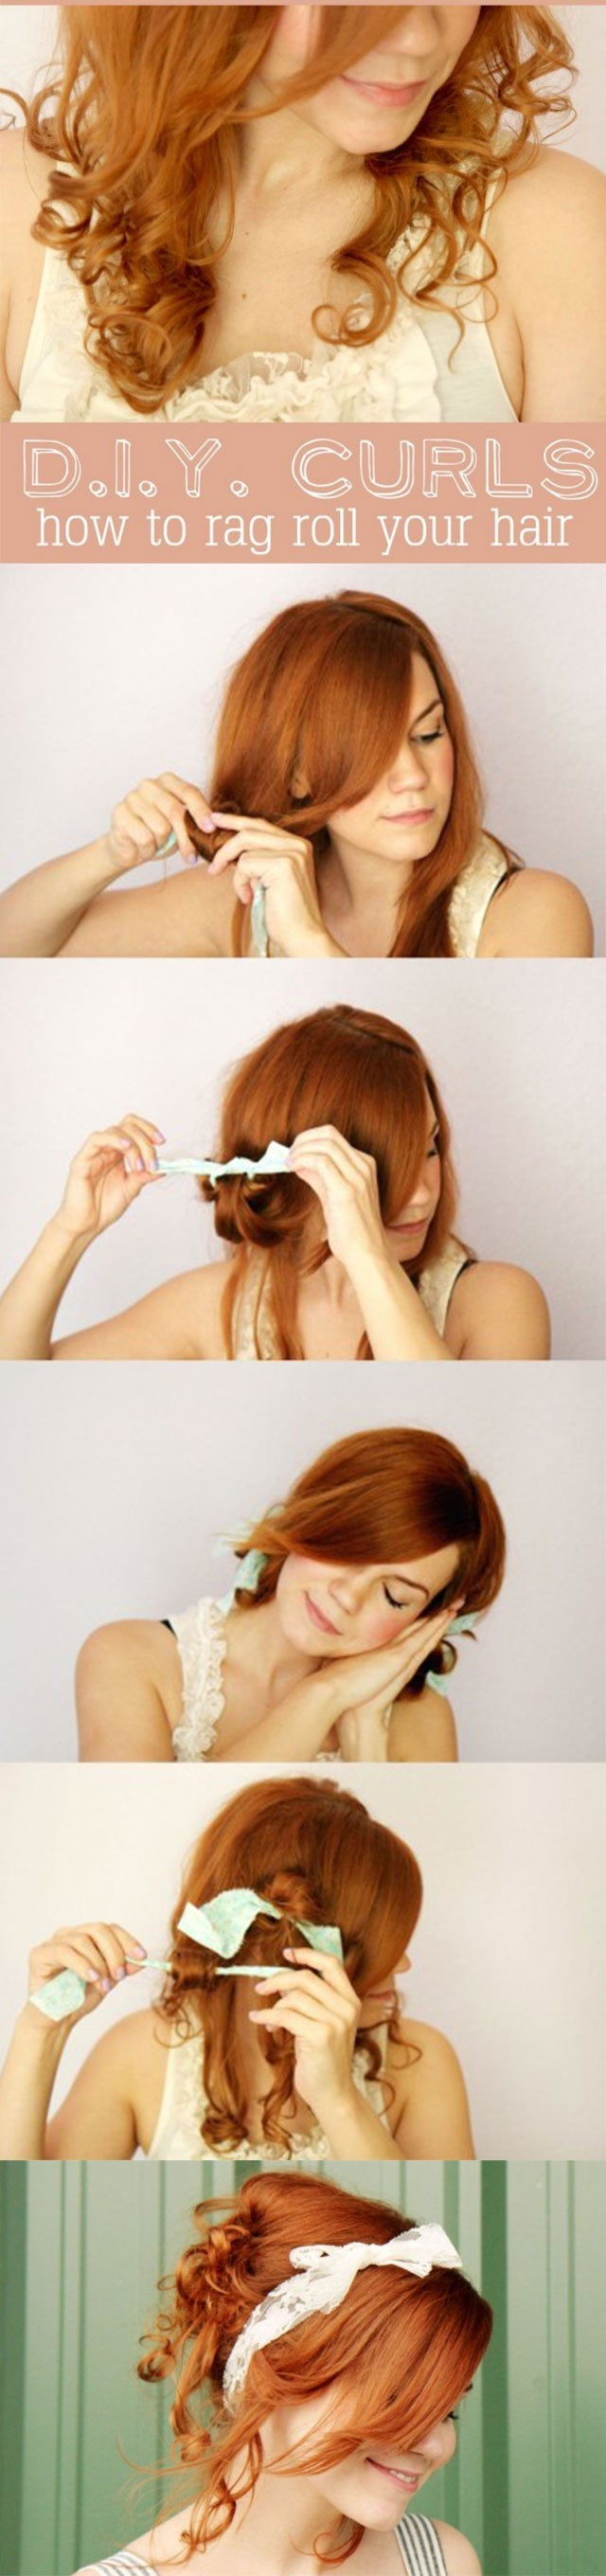 Cute-Holiday-Hairstyles-How-to-Rag-Roll-your-Hair Hair Styling For Girls Step By Step Tutorial Part